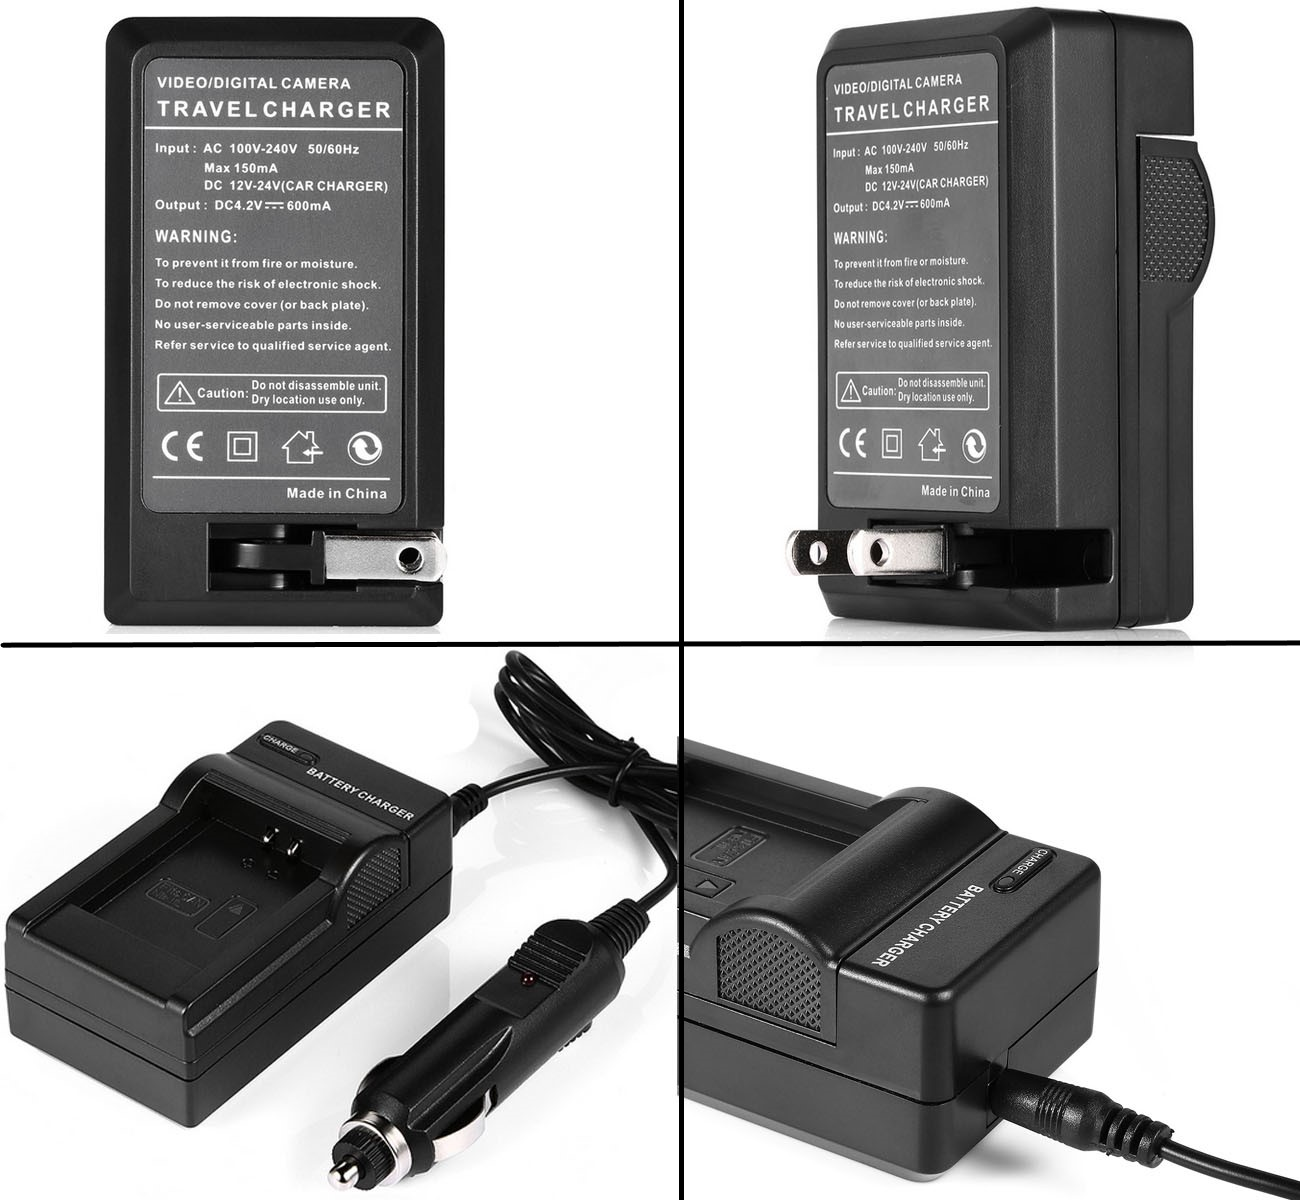 Replacement For Panasonic Lumix Dmc-ls70s Camcorder Battery Battery By Technical Precision